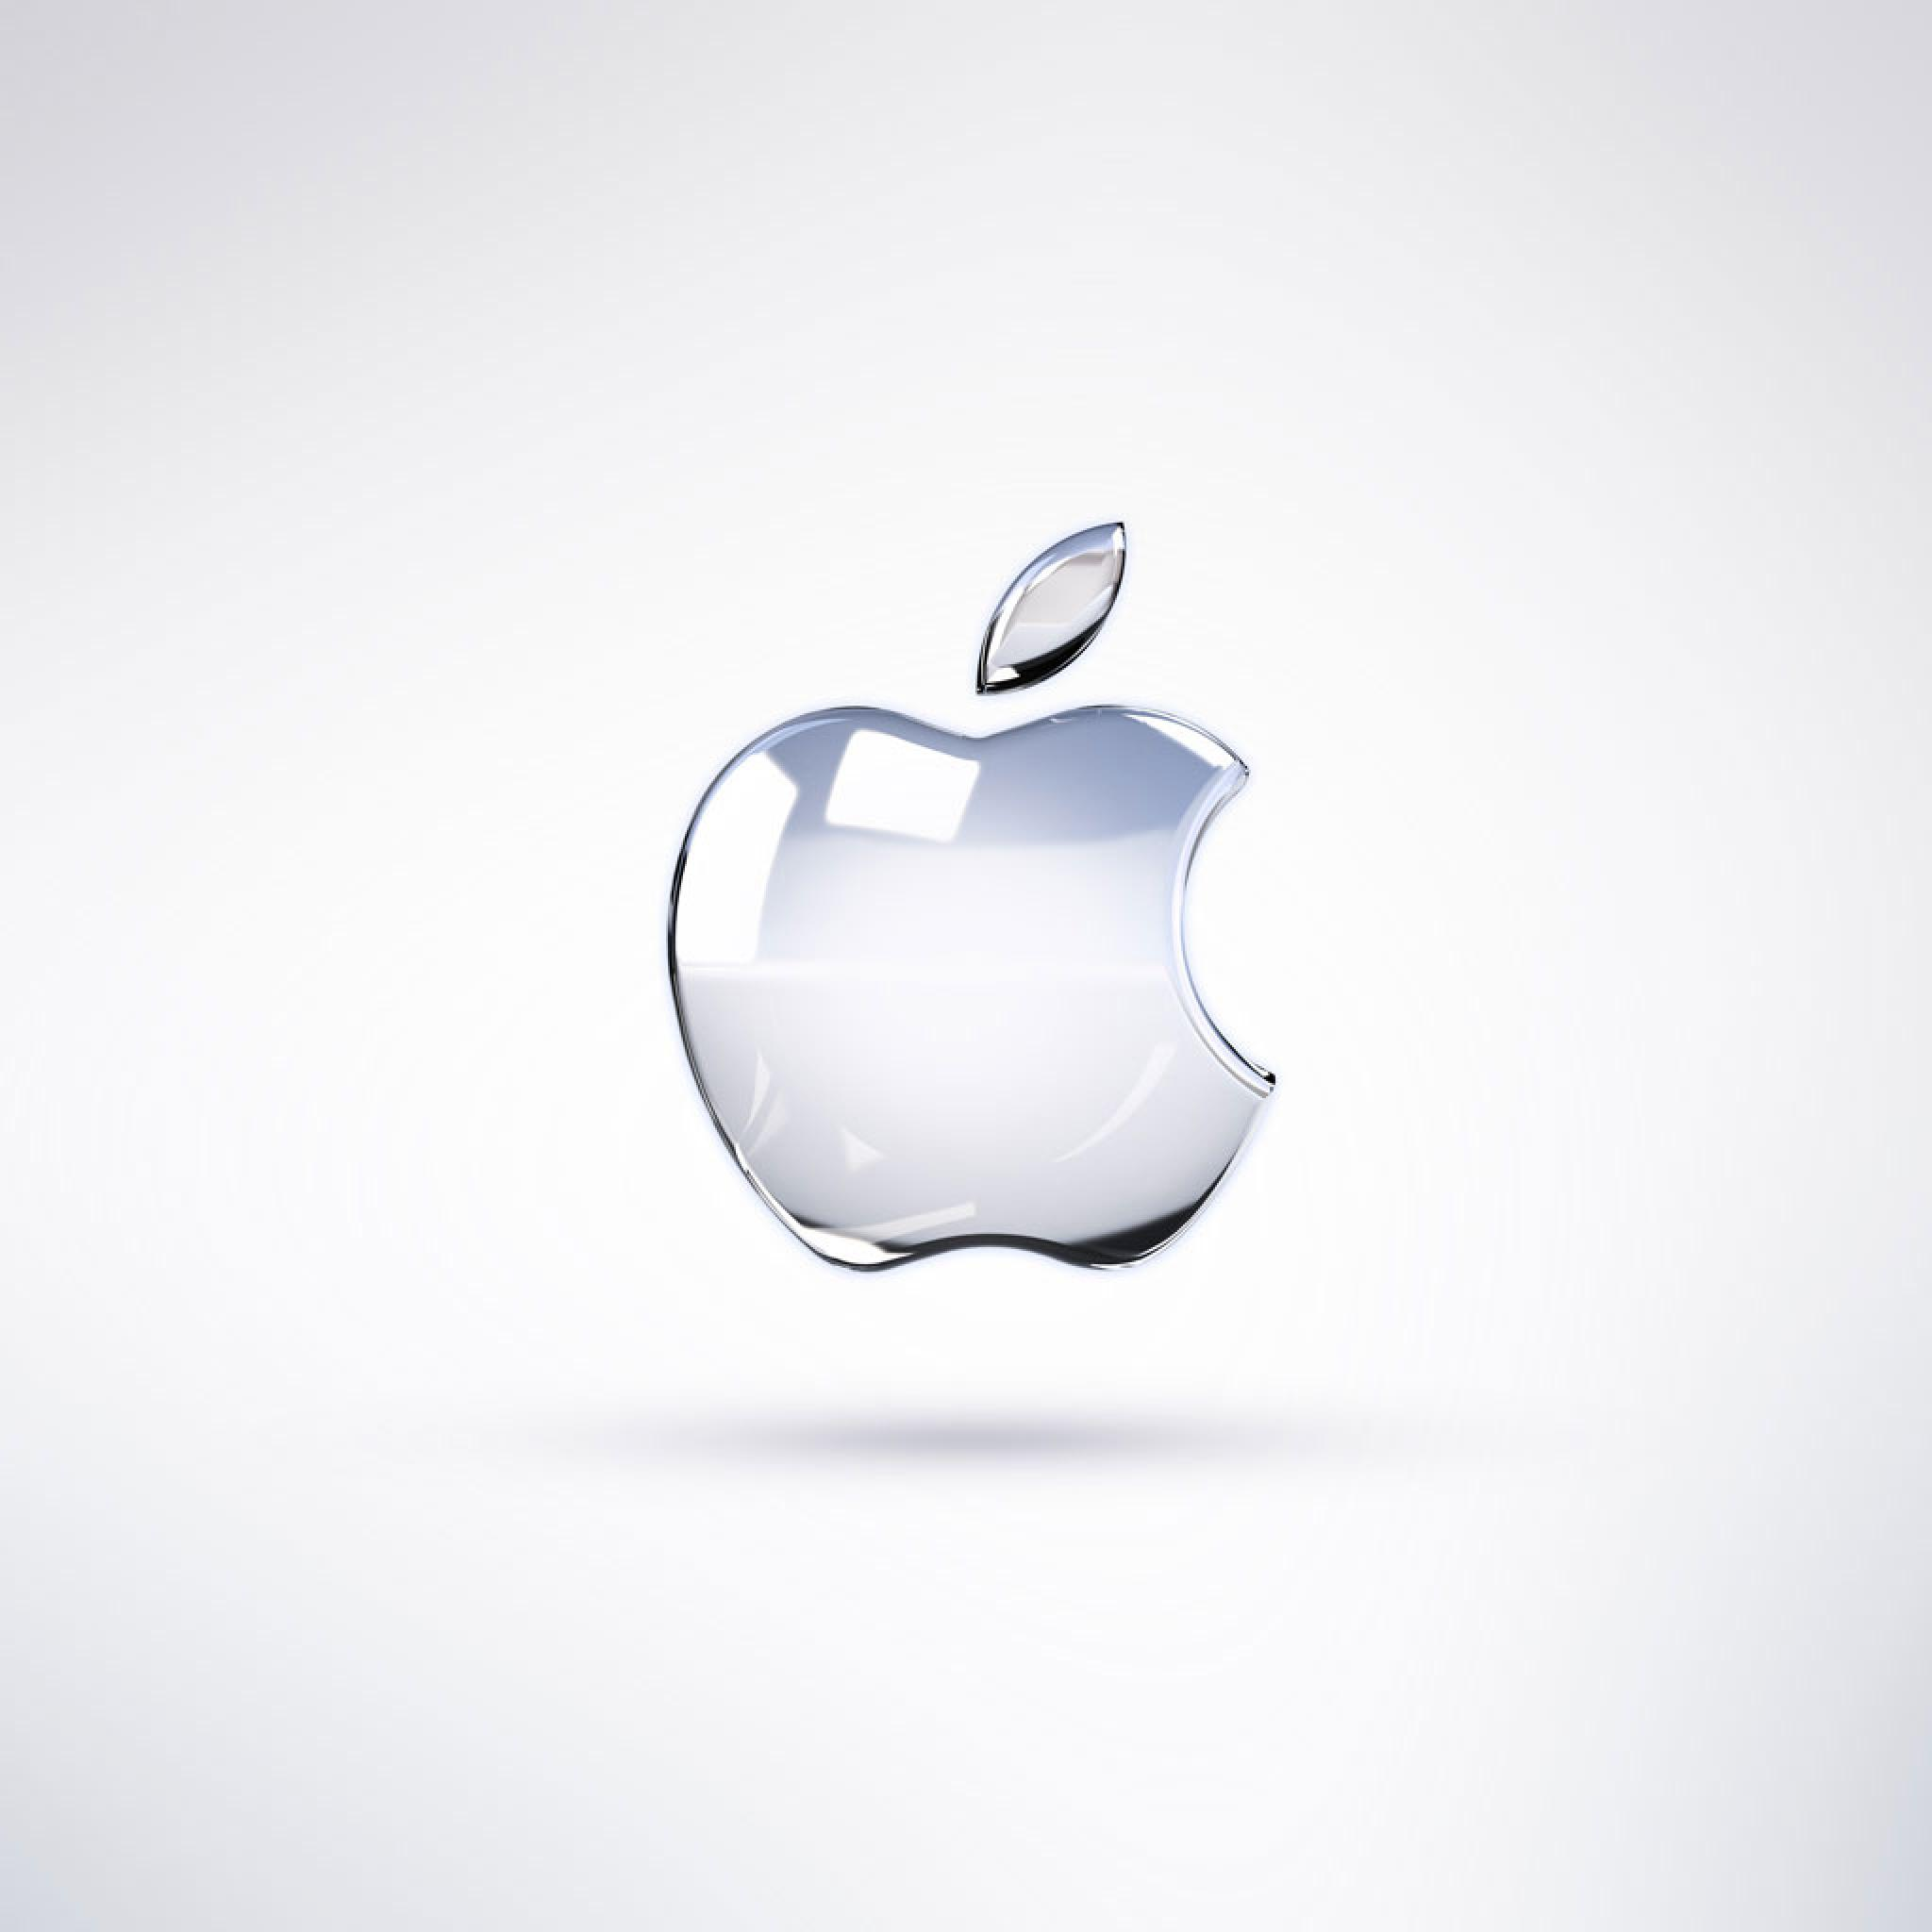 Iphone X 3d Touch Wallpaper Computers Glass Glossy Apple Logo Ipad Iphone Hd